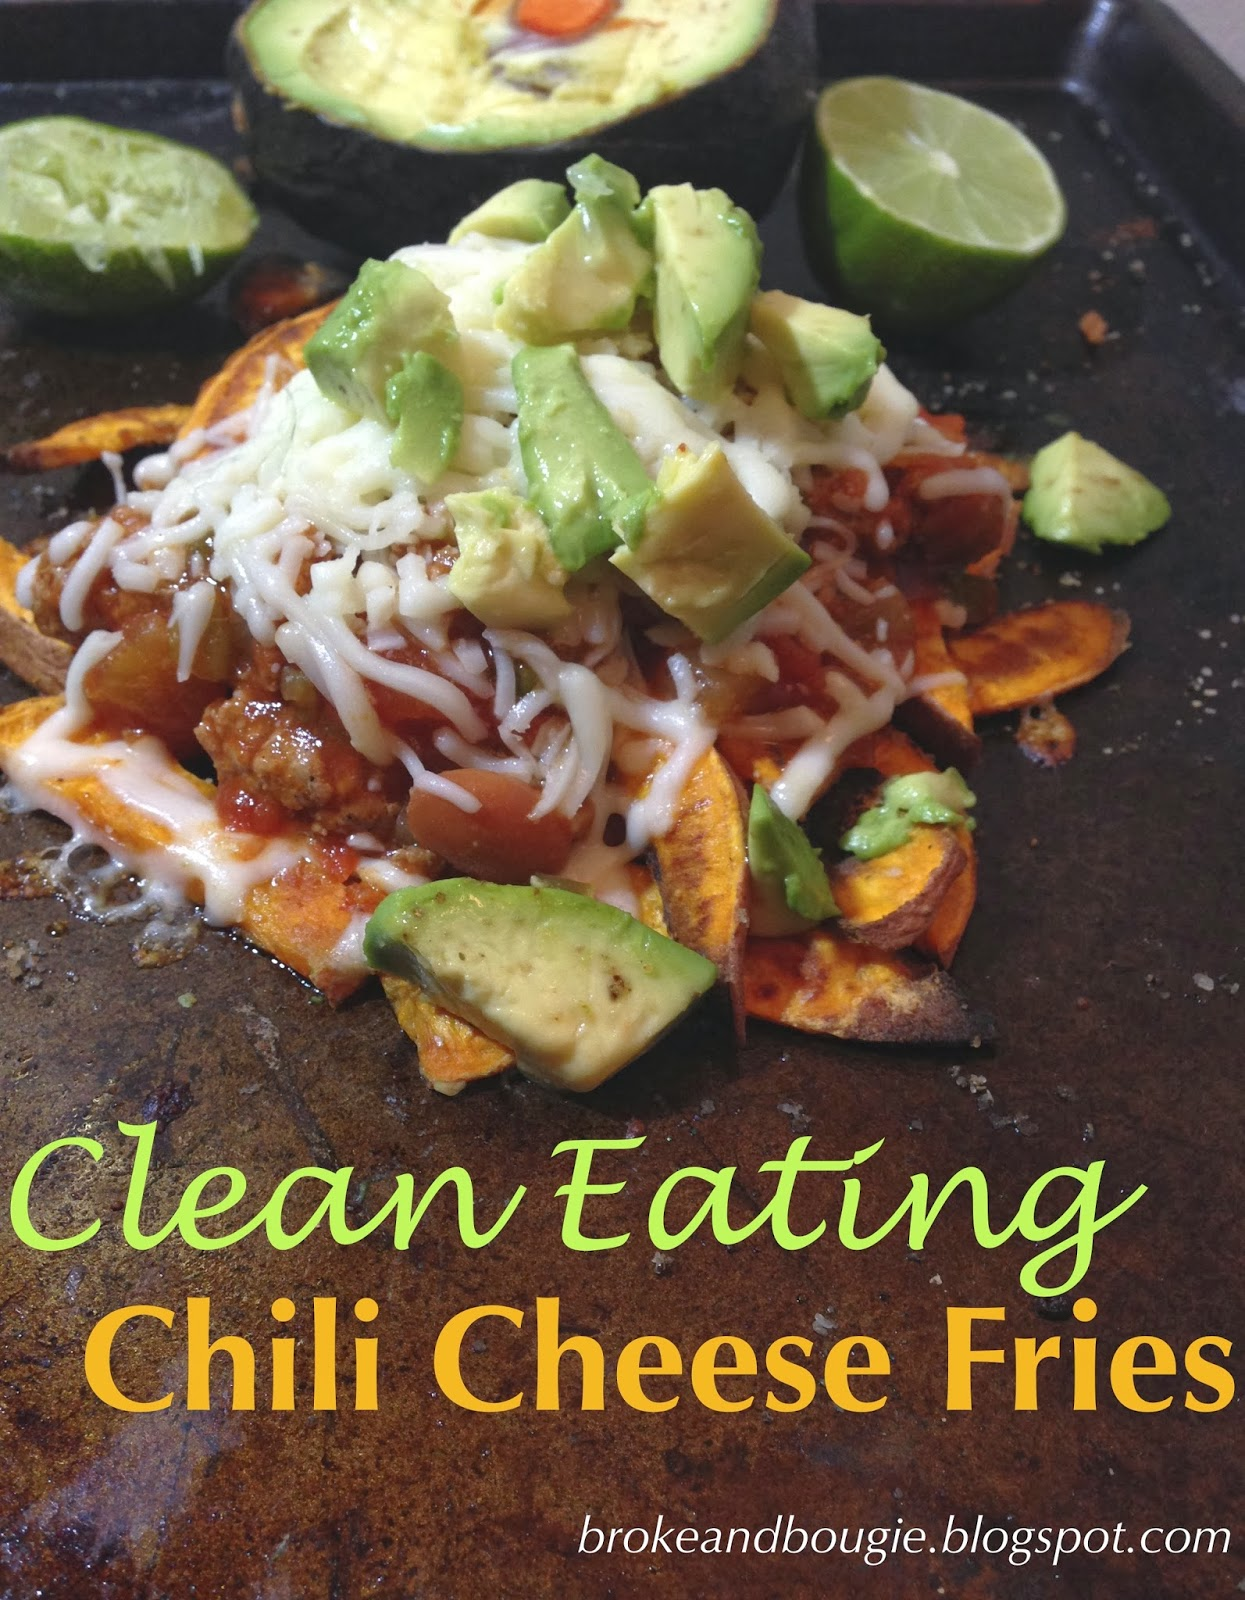 Broke and Bougie: Snacky Saturday: Clean Eating CHILI CHEESE FRIES